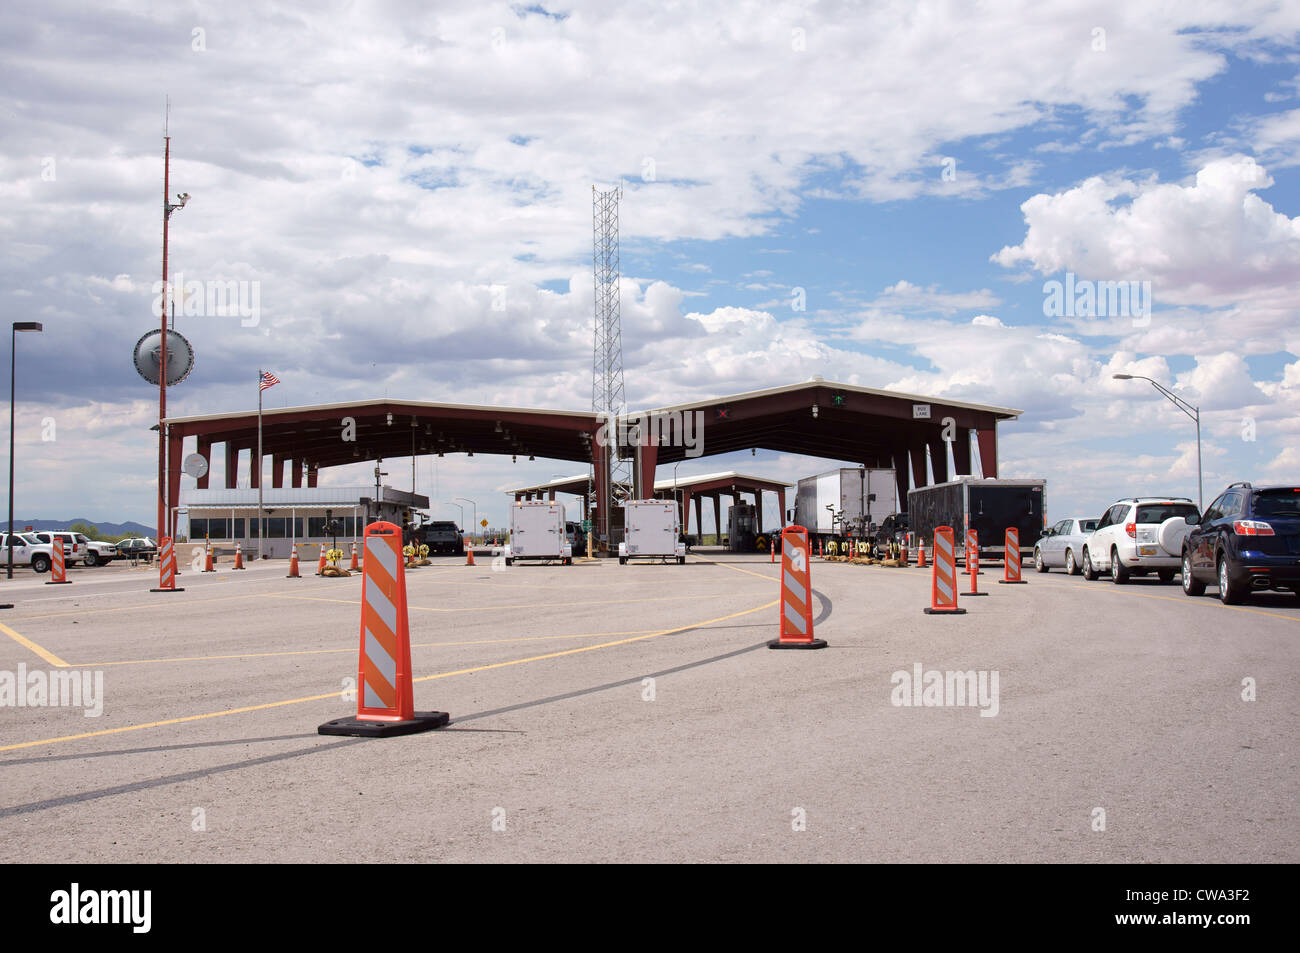 ins inspection station las cruces new mexico nm hispanic latino immigration naturalization service border - Stock Image